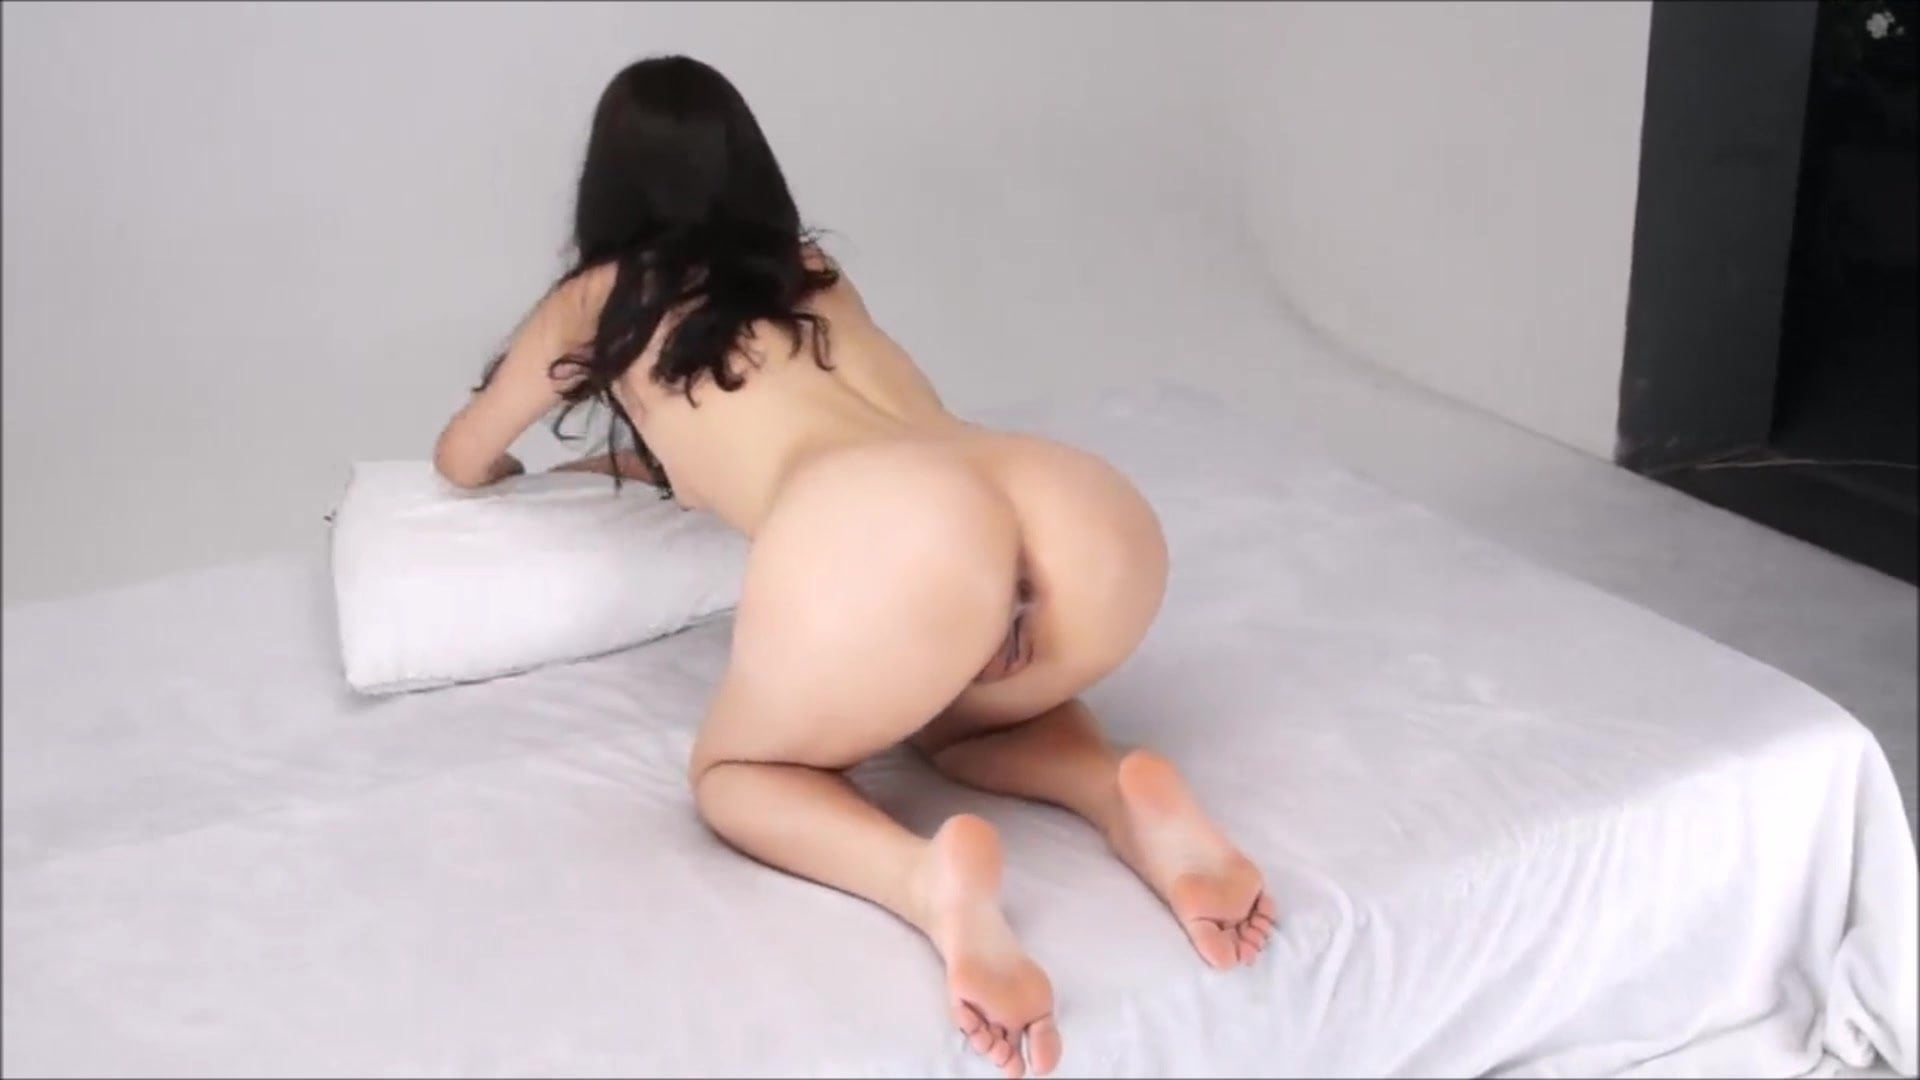 Adult archive Free pictures fucking a chinese girl